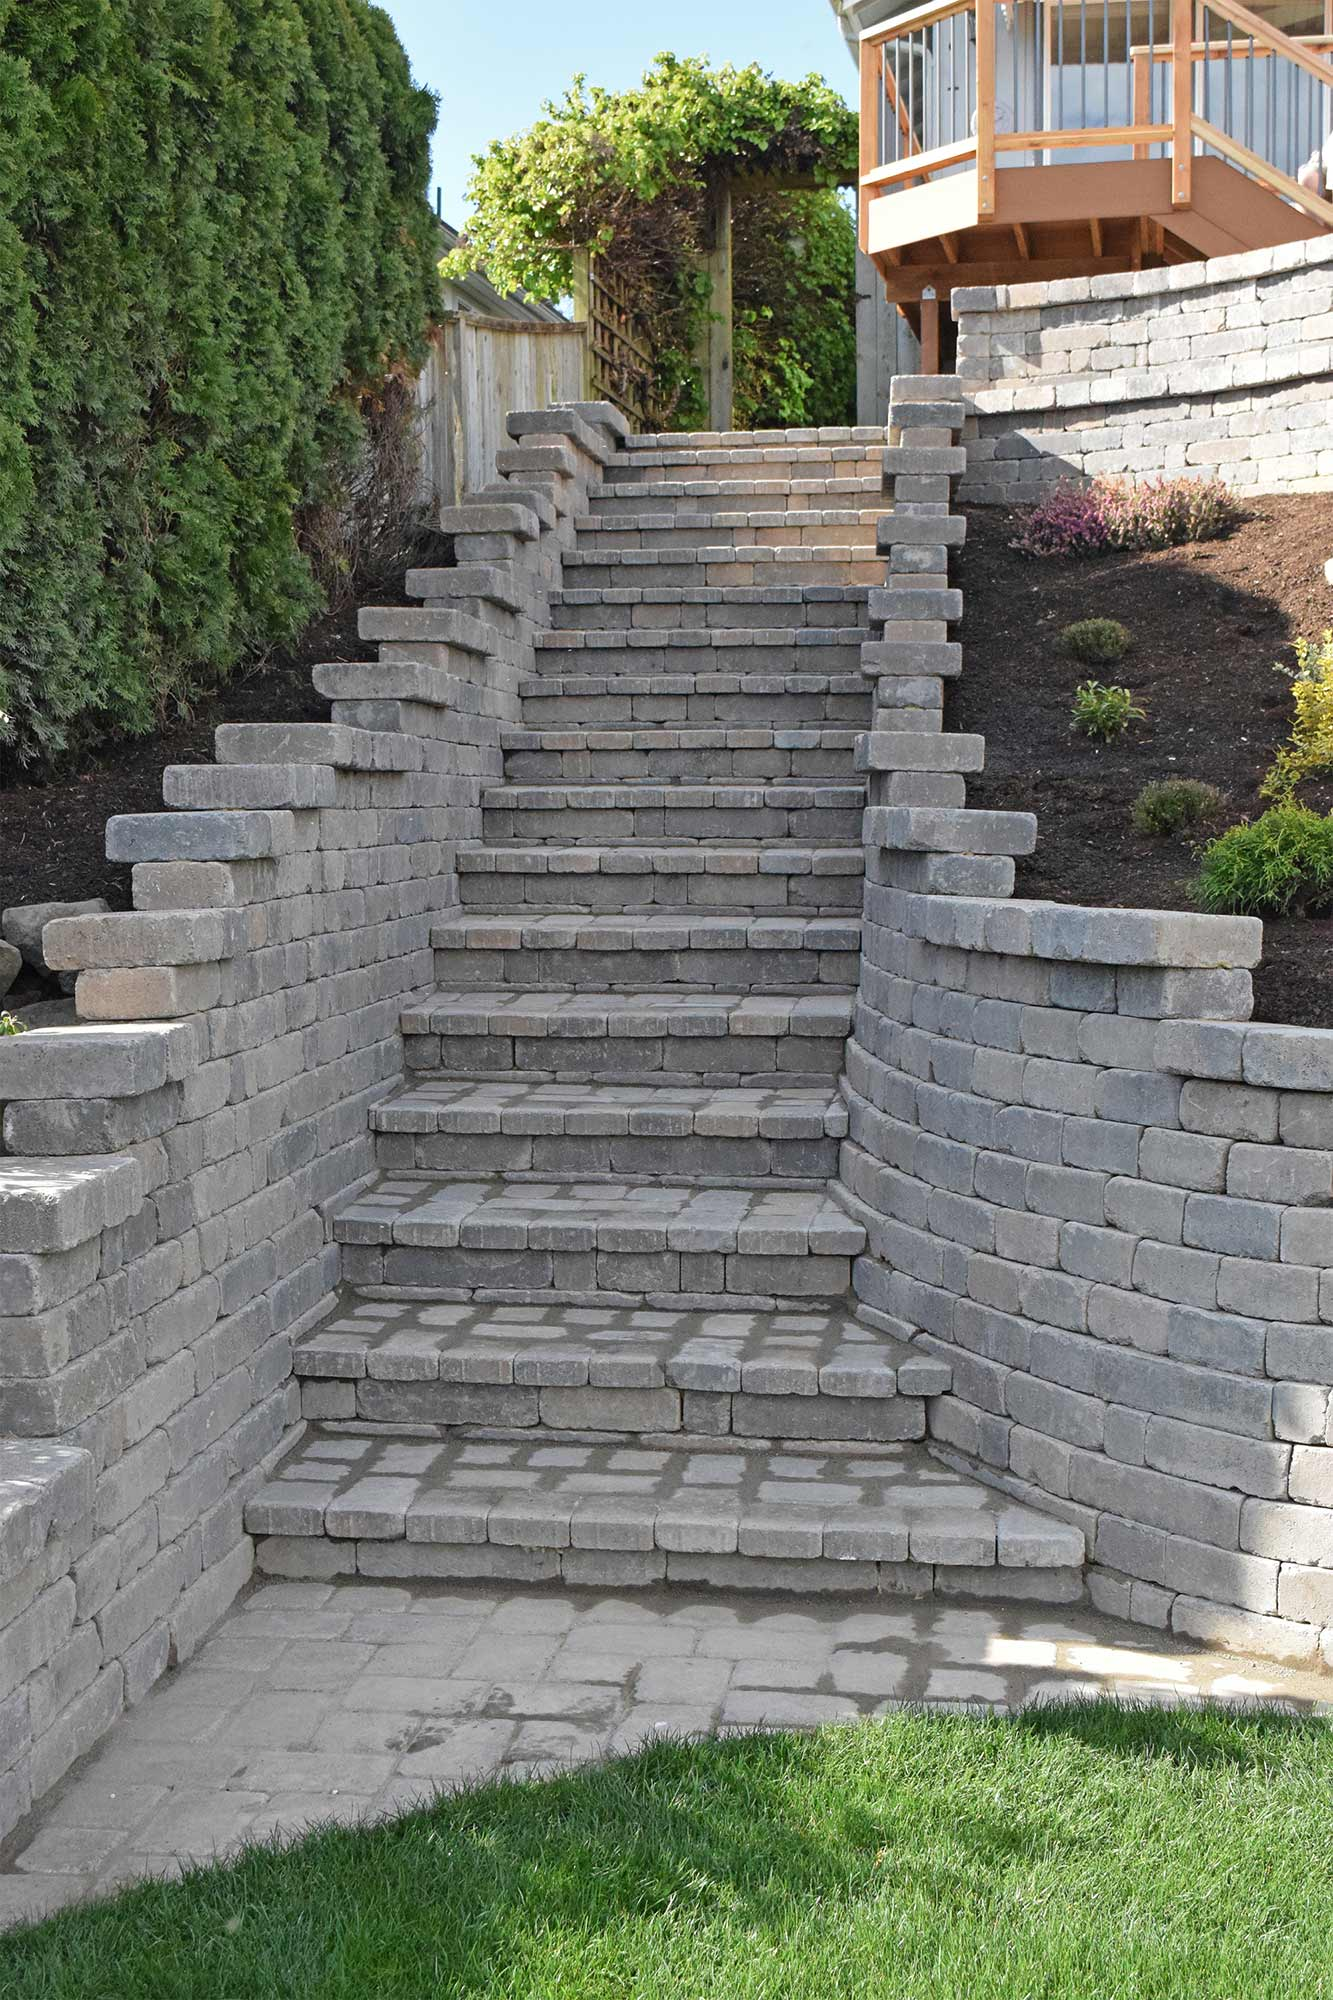 Paver Stairway, Bottom View Paver Stairway, Bottom View ...